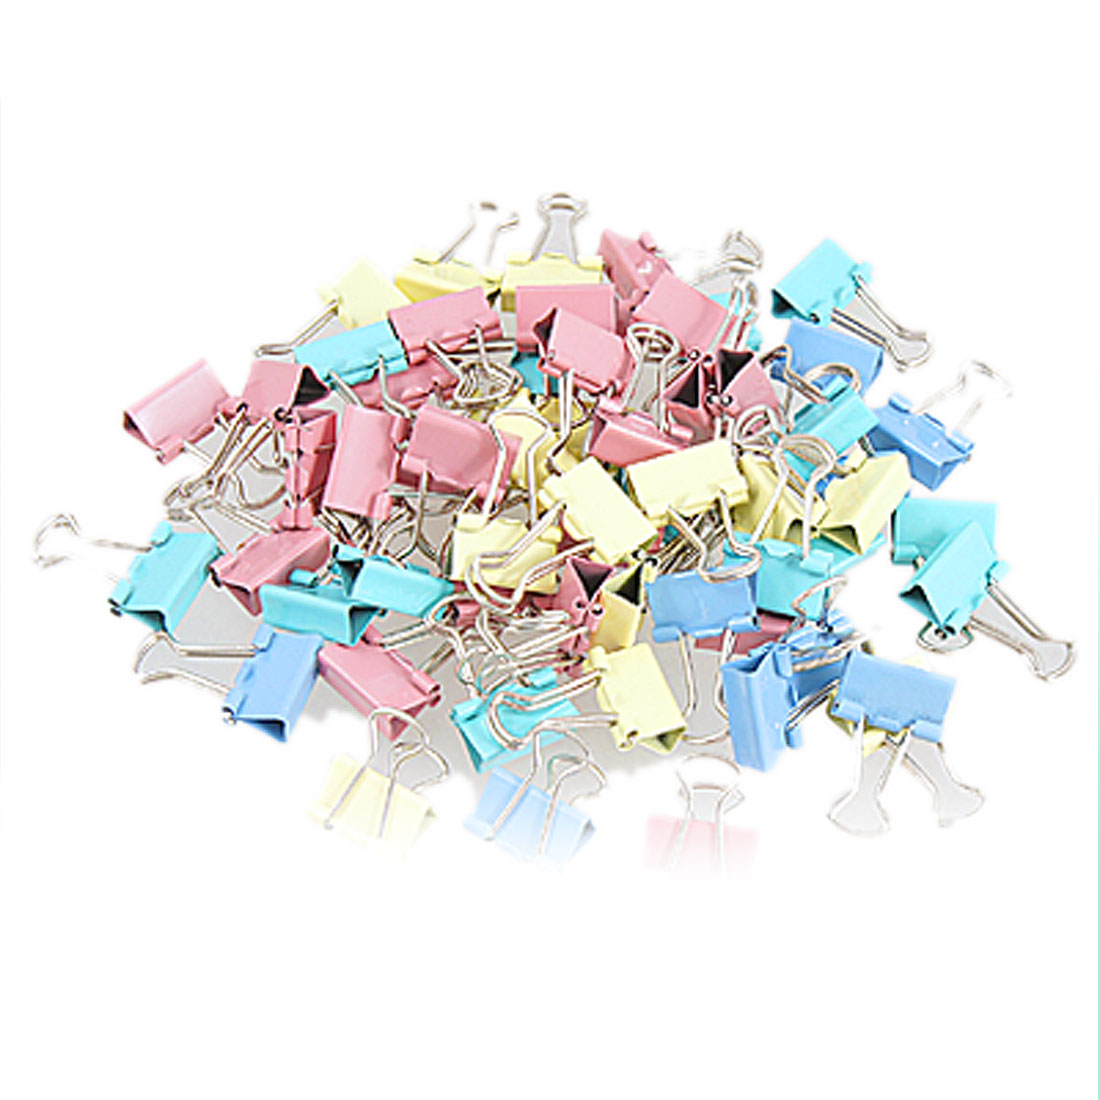 60 Pcs Metal Assorted Color File Paper Organizer Document Binder Clips Holders